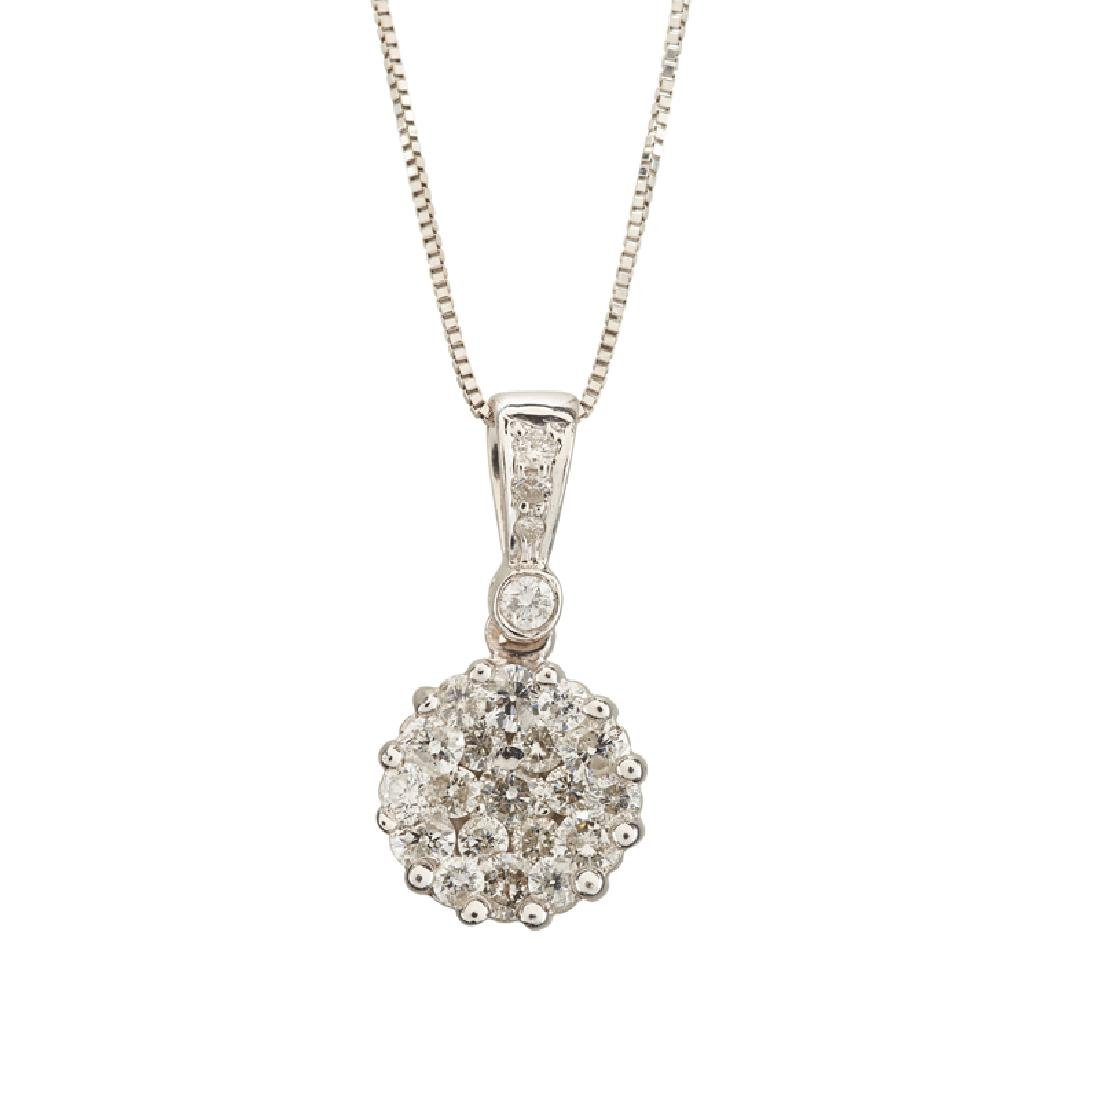 DIAMOND & WHITE GOLD PENDANT NECKLACE